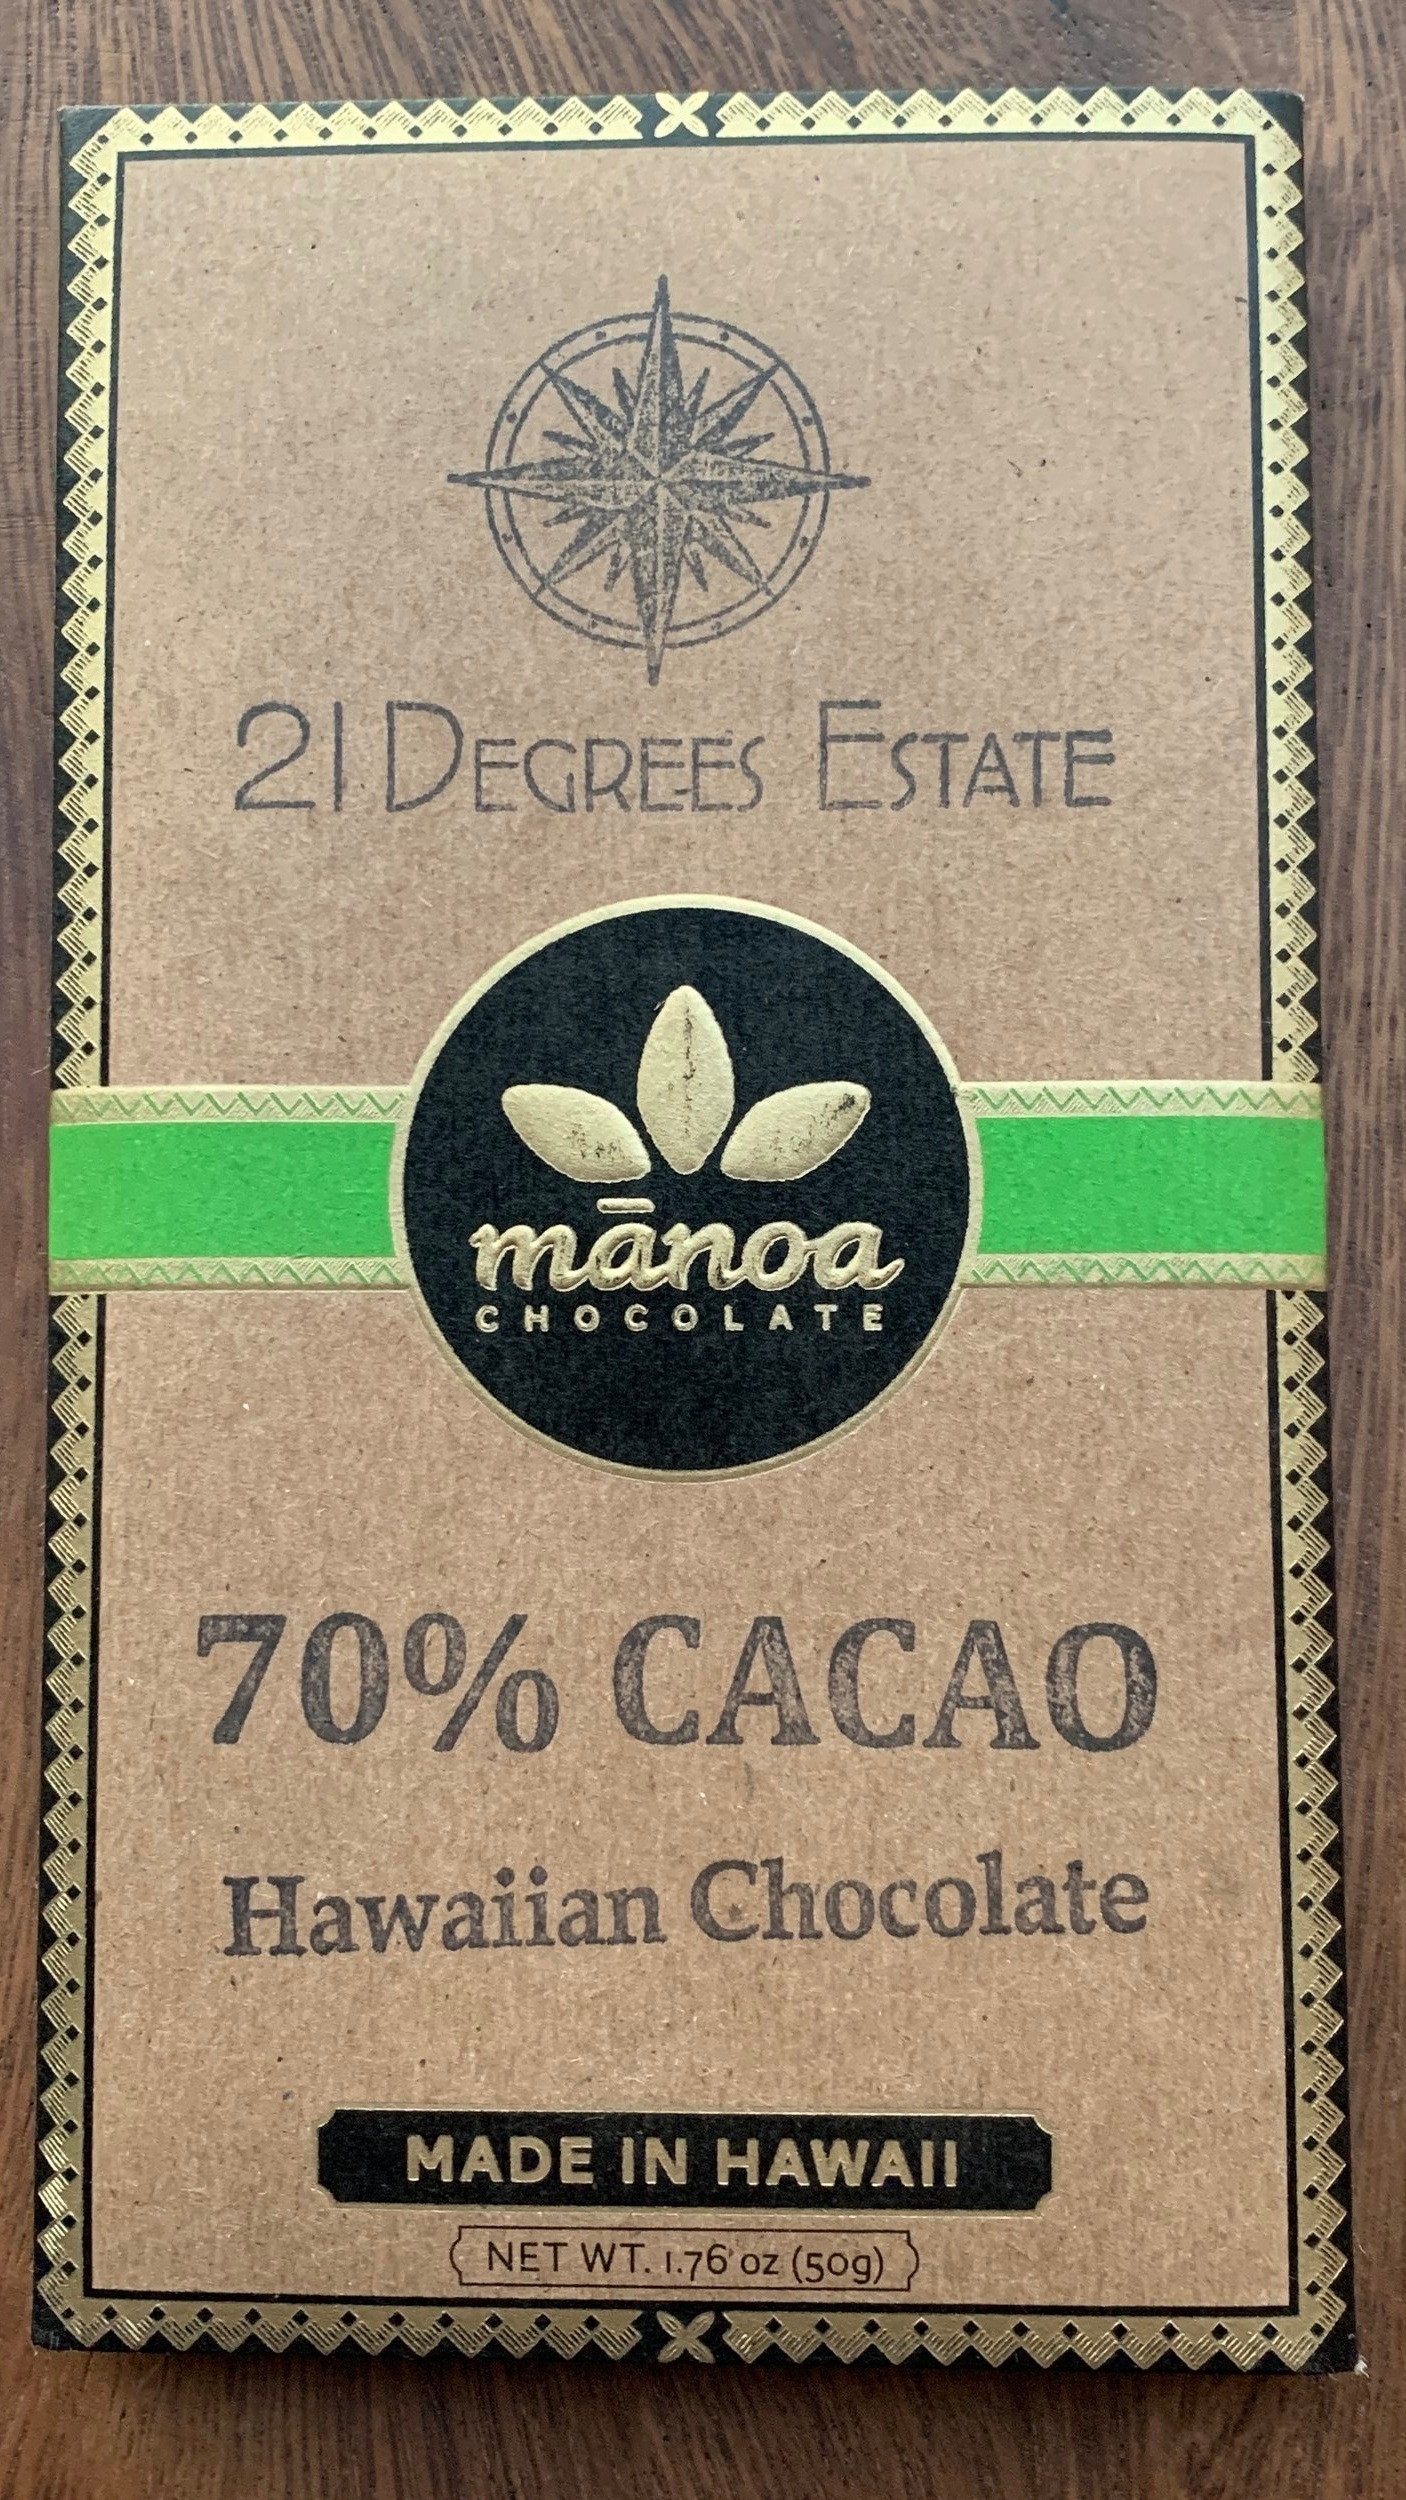 21º Estate / Manoa - Heavy Chocolate, mildly fruity.